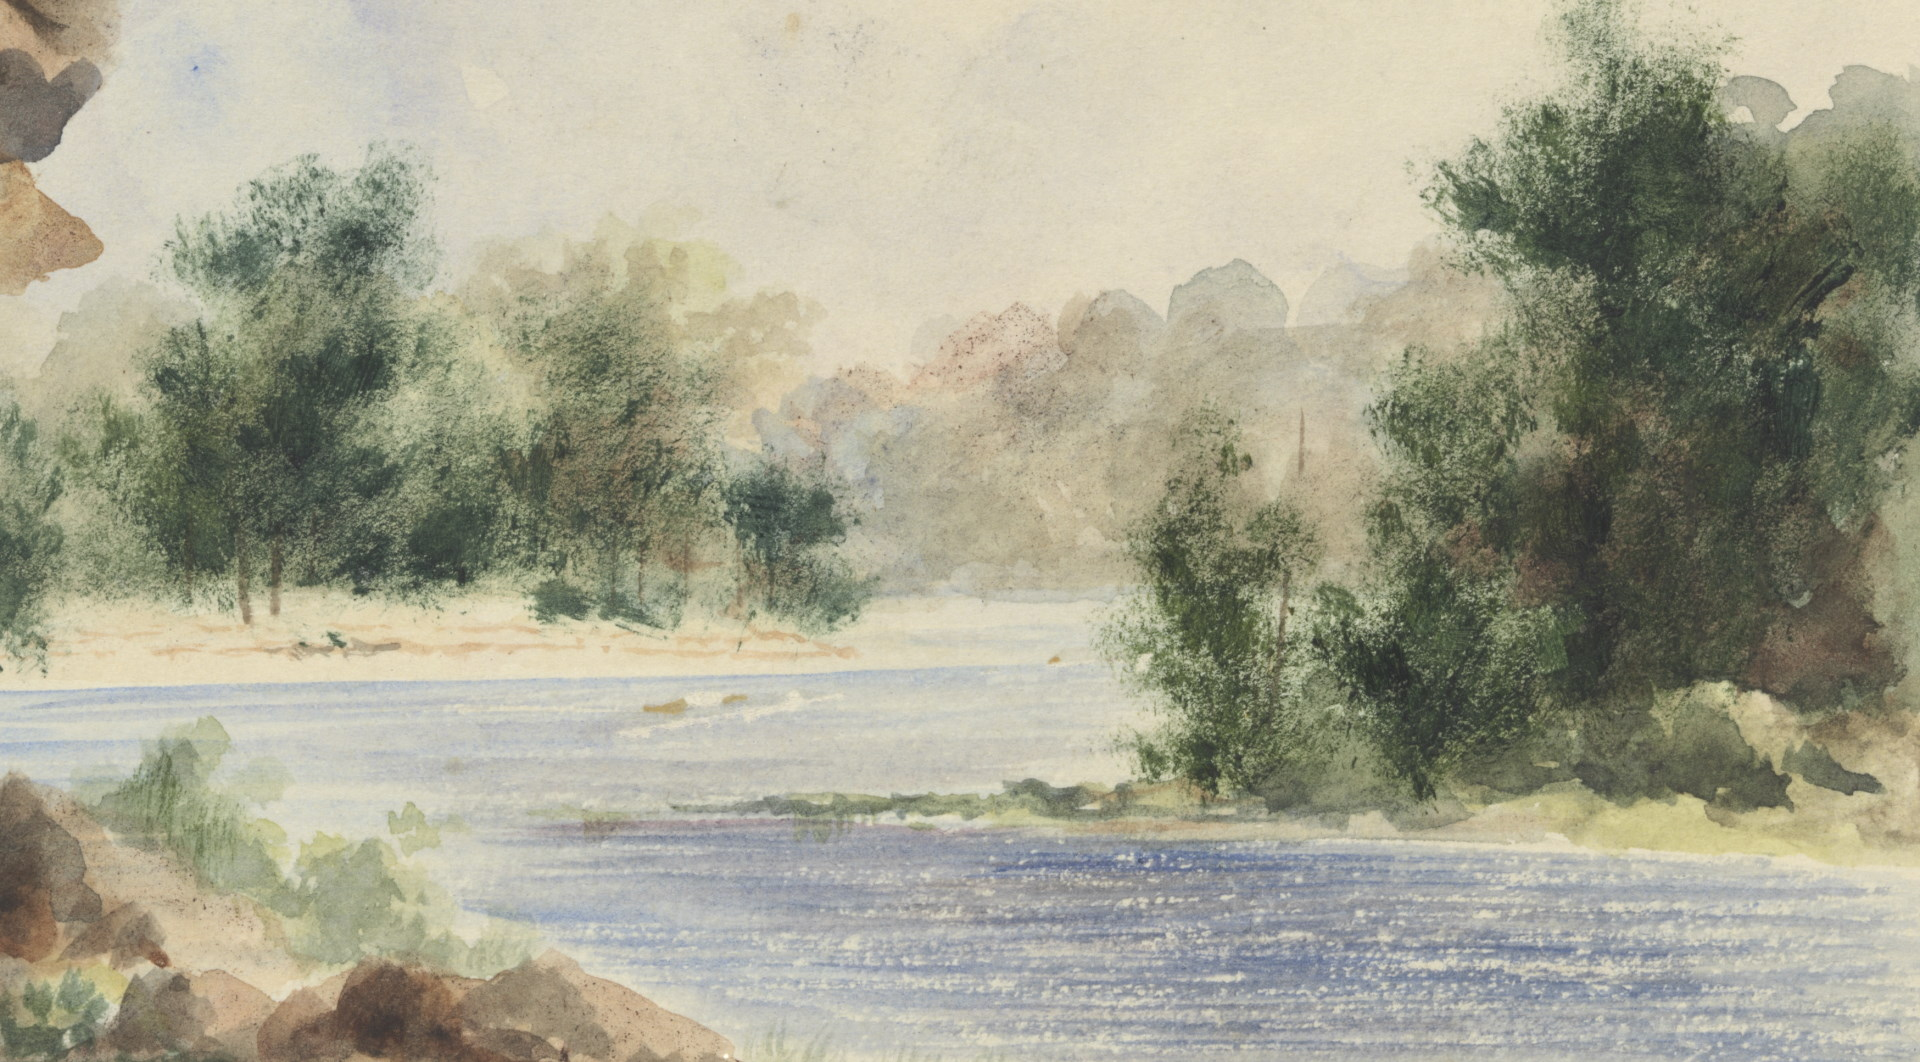 Clarence River, near Dr. Dobie's, New South Wales, c.1848